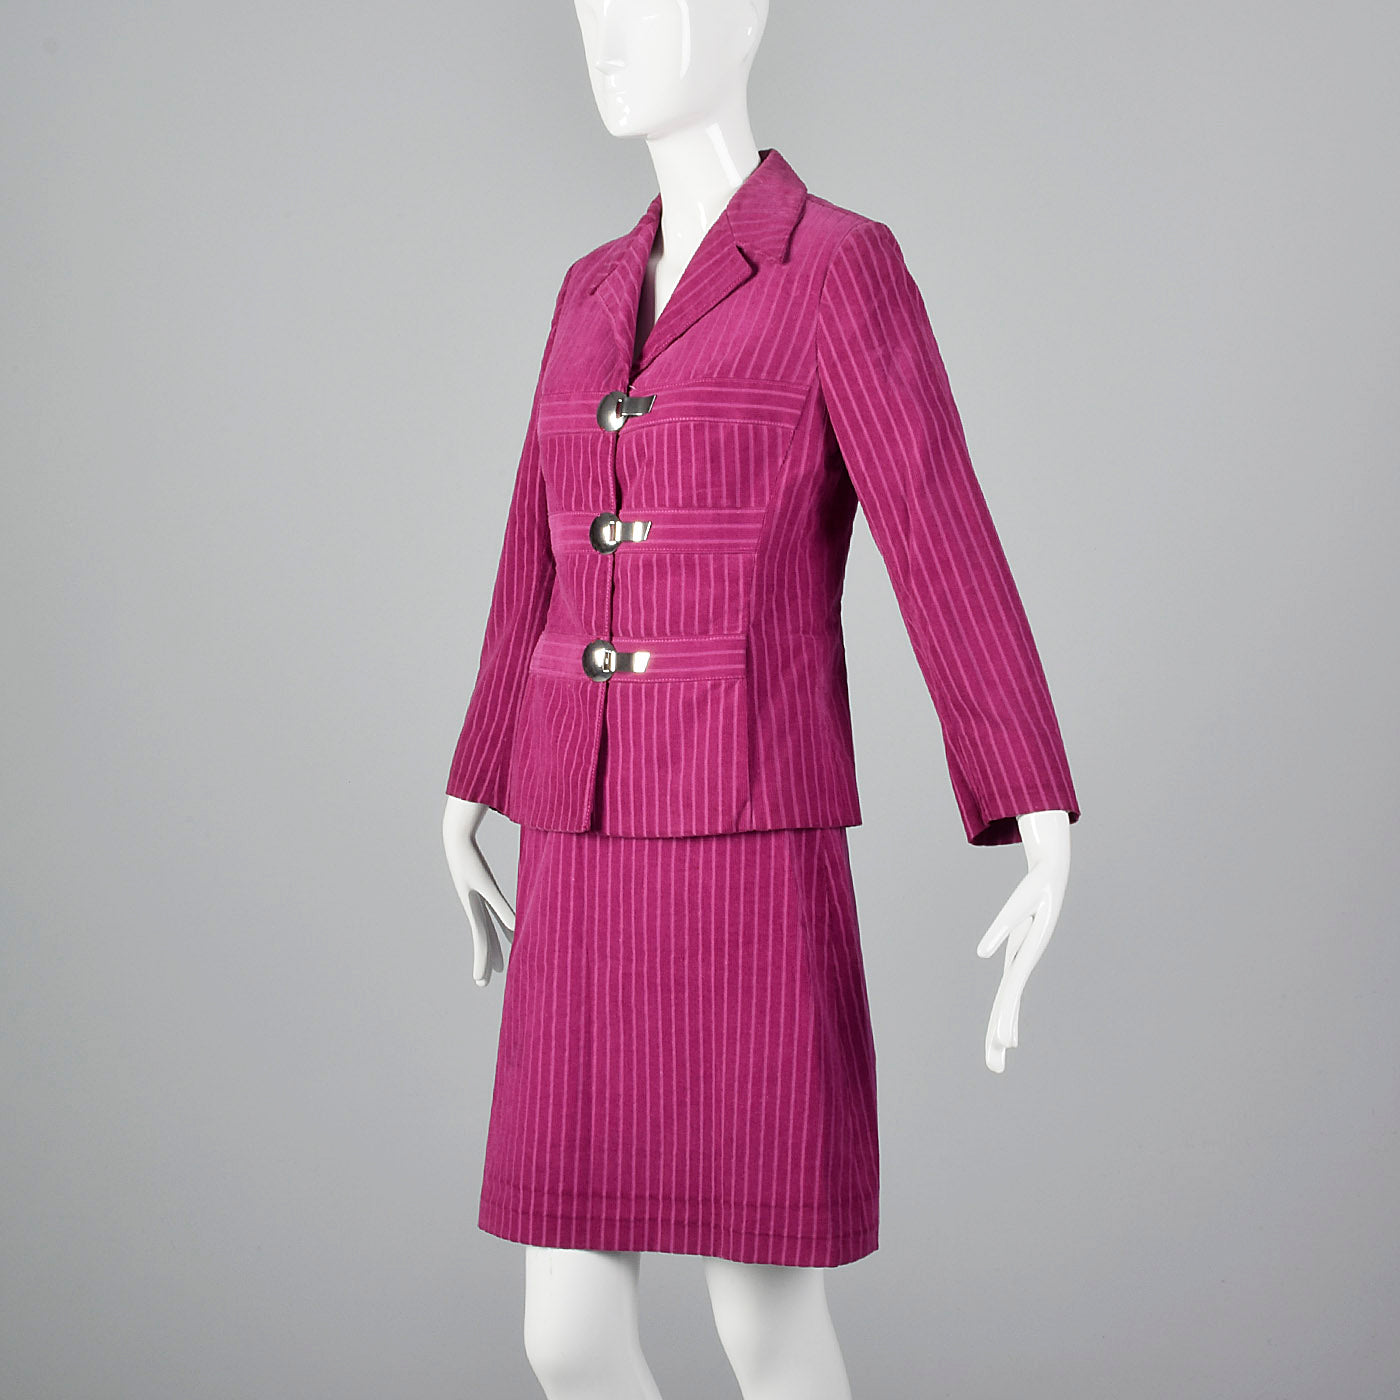 1960s Pink Corduroy Skirt Suit with Mod Silver Clasp Closures